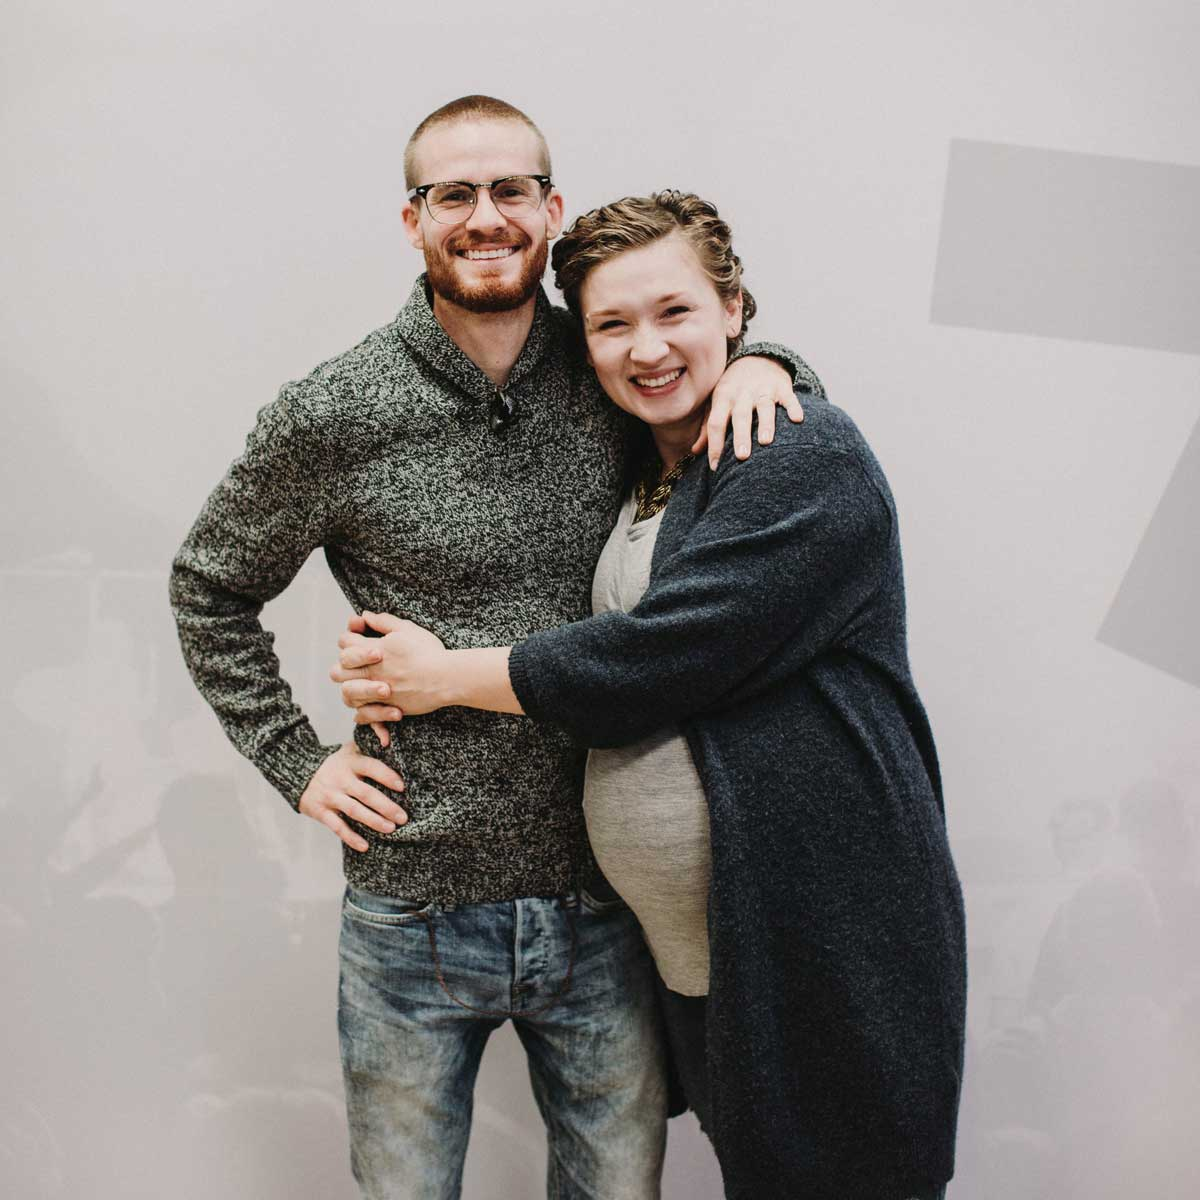 Luke + Hannah - Type of Group: Multi-generational (single, young professional, all ages, married)Age Group: All agesChildren Age: No ChildrenDay/Time: Wednesday, 7:00 Location: East Nashville (37216)